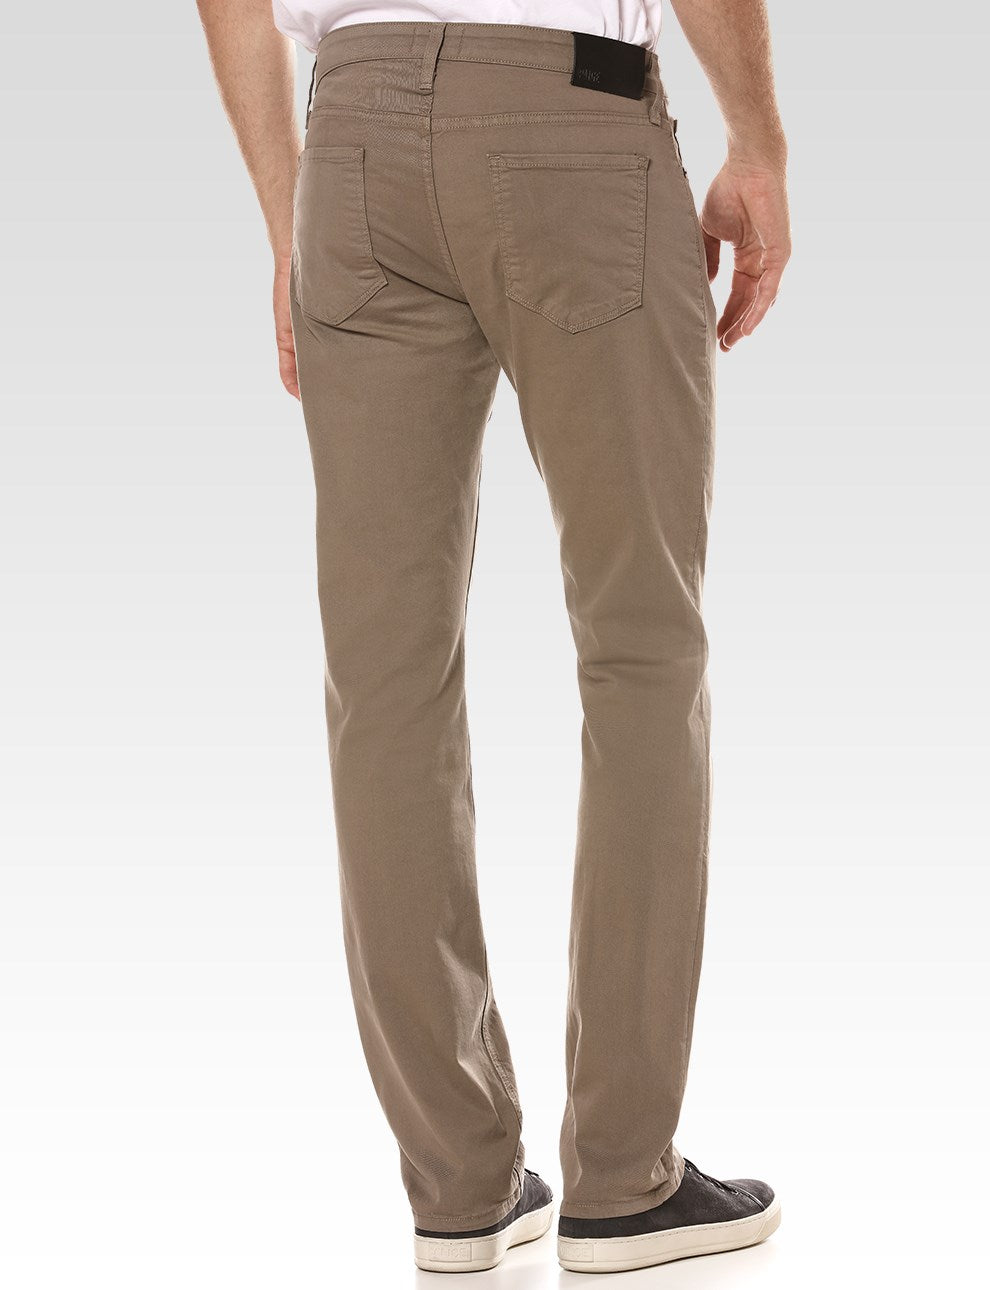 Paige Normandie Slim Fit Iron Mountain Twill Jean